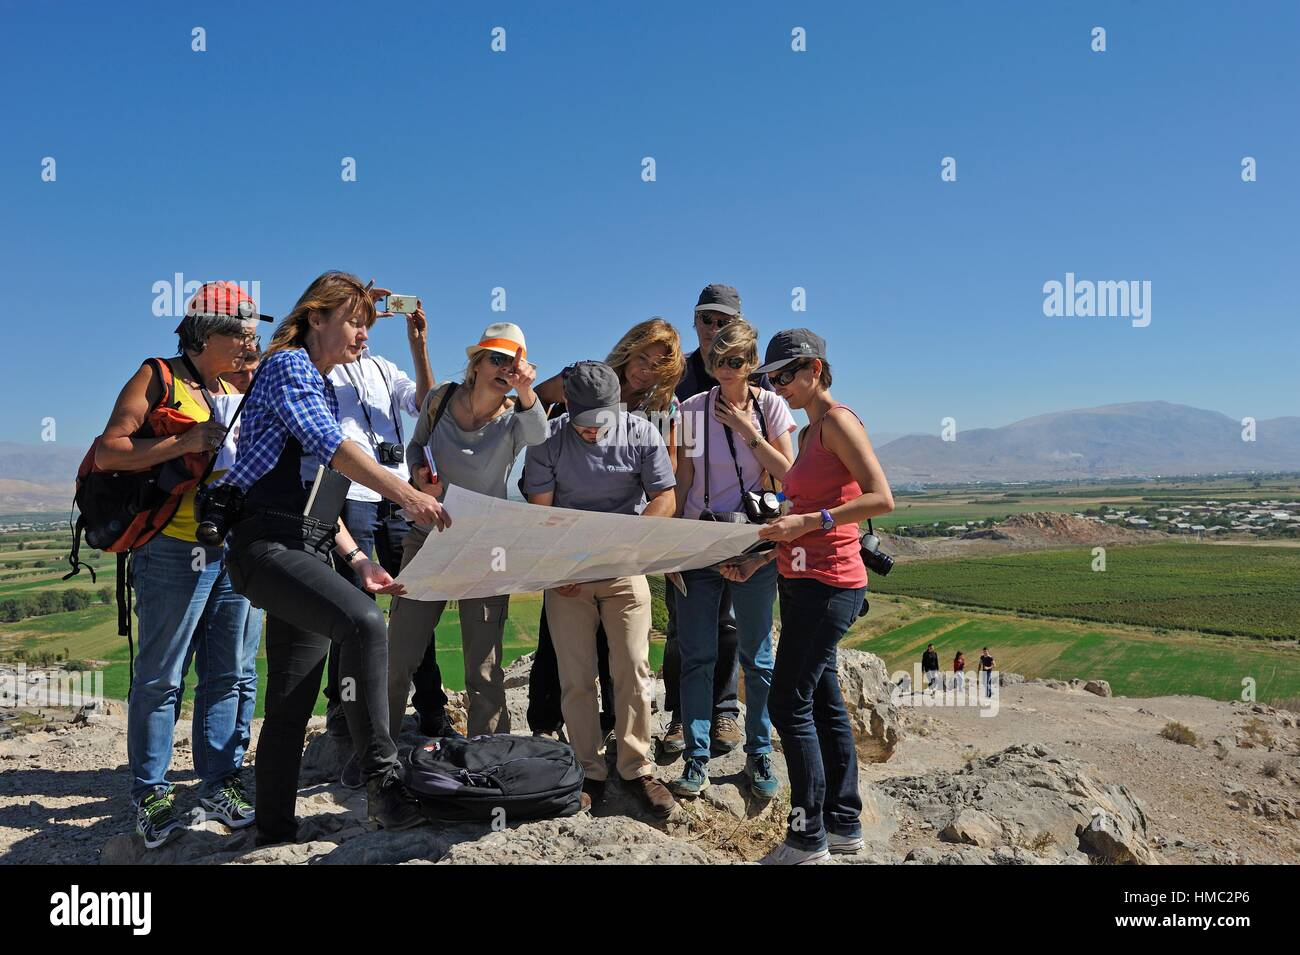 guide explaining geography with a map to a tourist group at Khor Virap Monastery, Ararat plain, Artashat, Armenia, - Stock Image